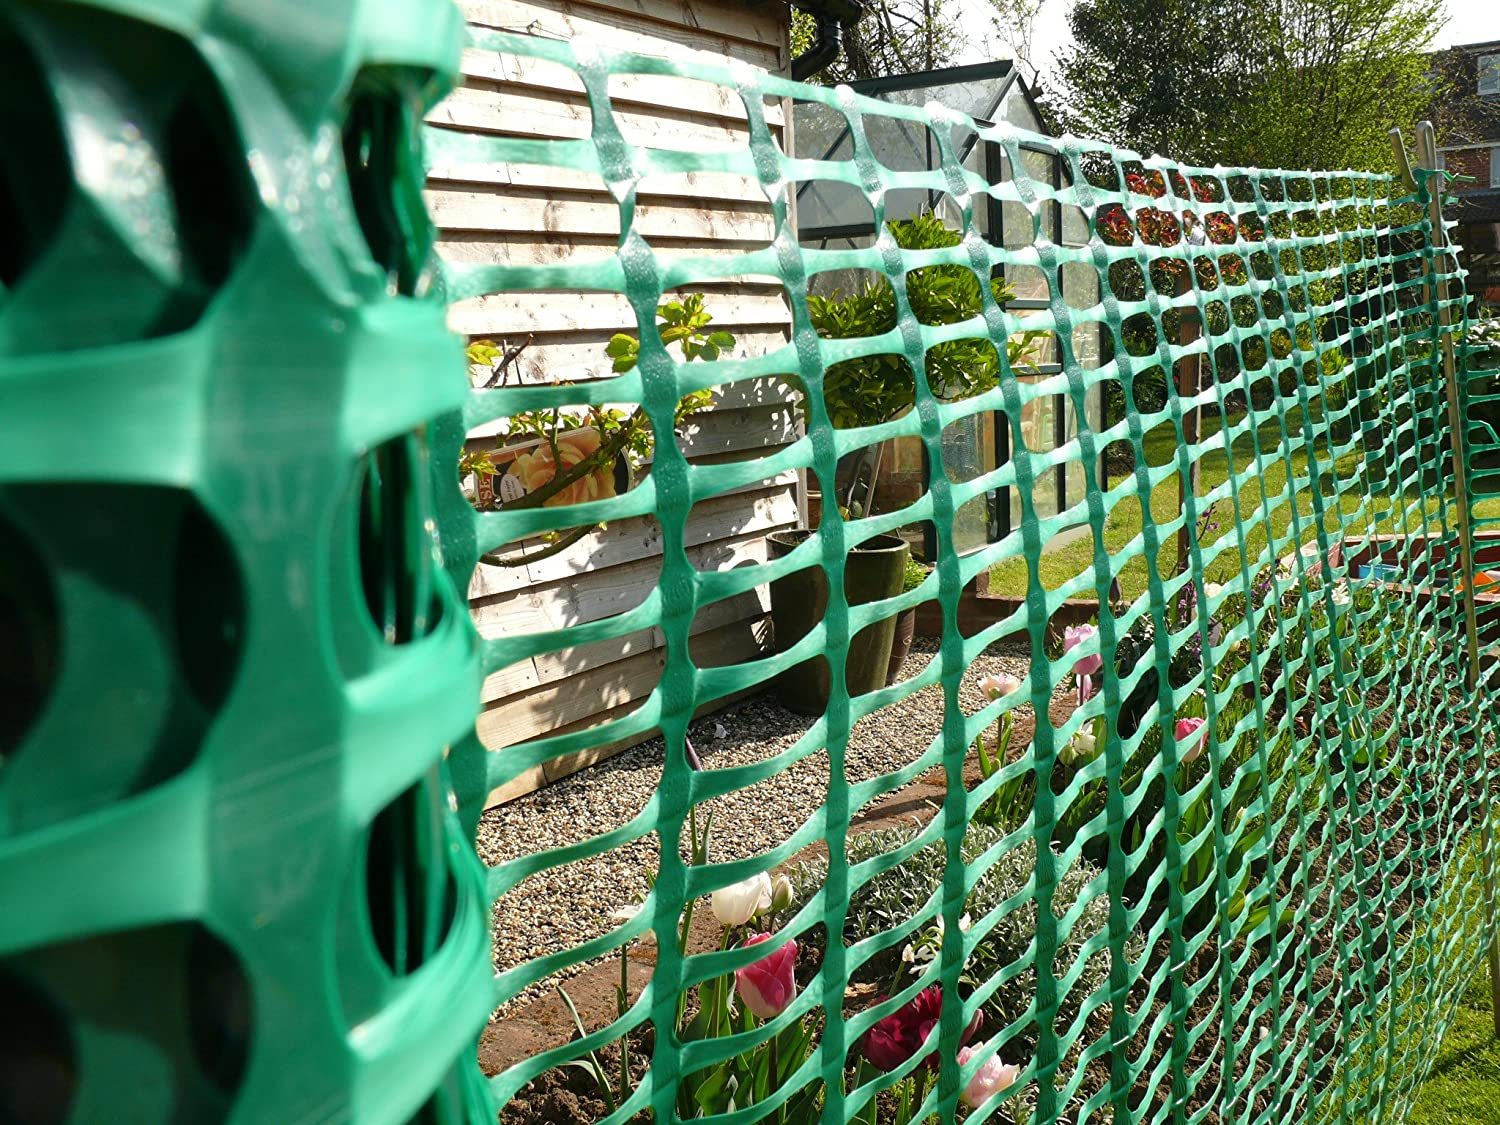 Plastic Mesh Fencing 1m X 50m Green Barrier Netting Heavy Duty Weather  Resistant   Ideal As Barrier For Crowd Control, Dog/ Animal Fence:  Amazon.co.uk: ...